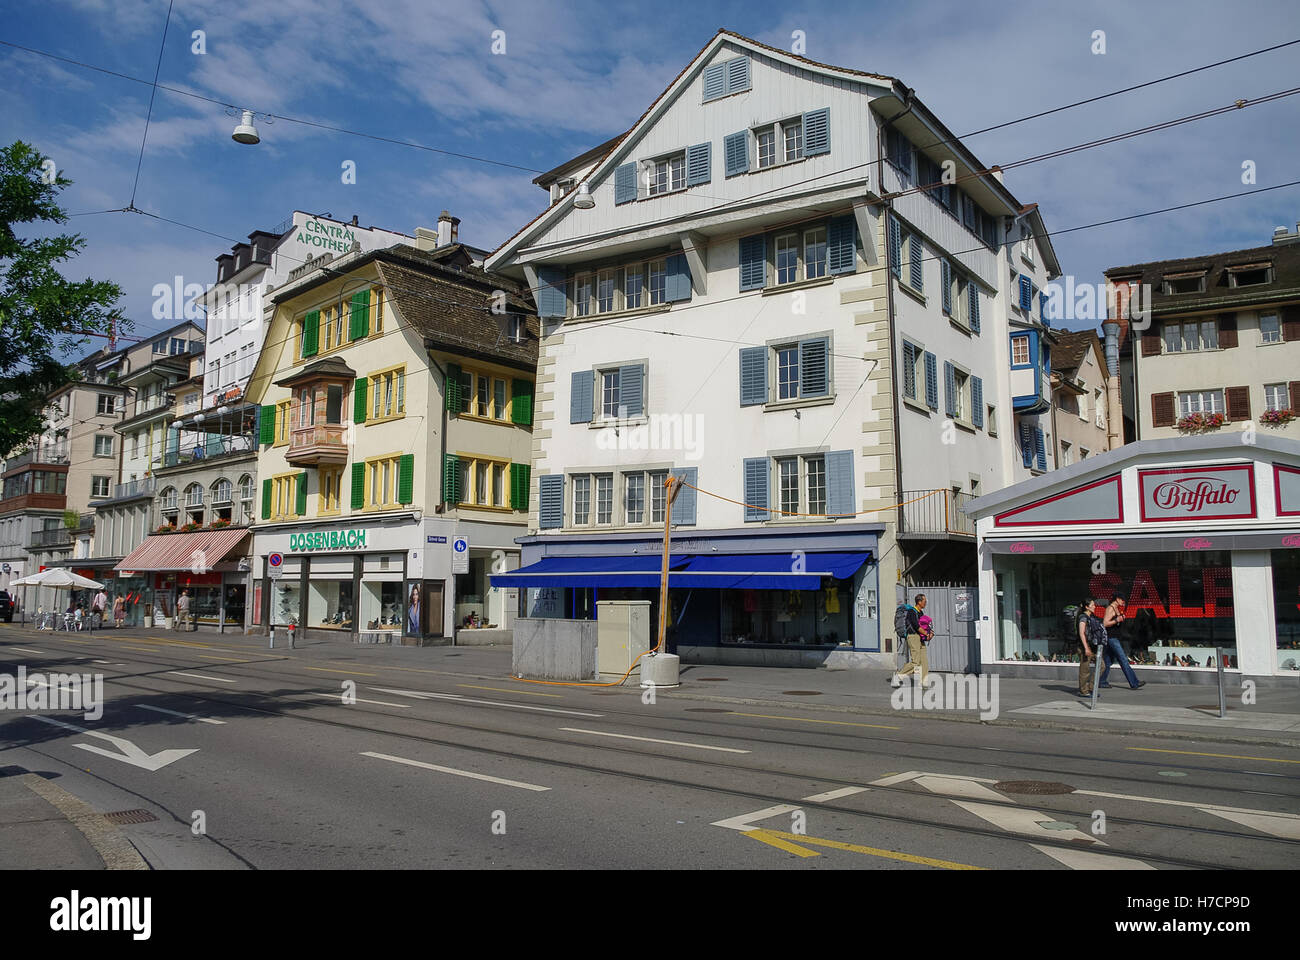 Zurich, Switzerland - August 22, 2010: Traditional buildings on the Limmatquai quay in historic part of city. - Stock Image